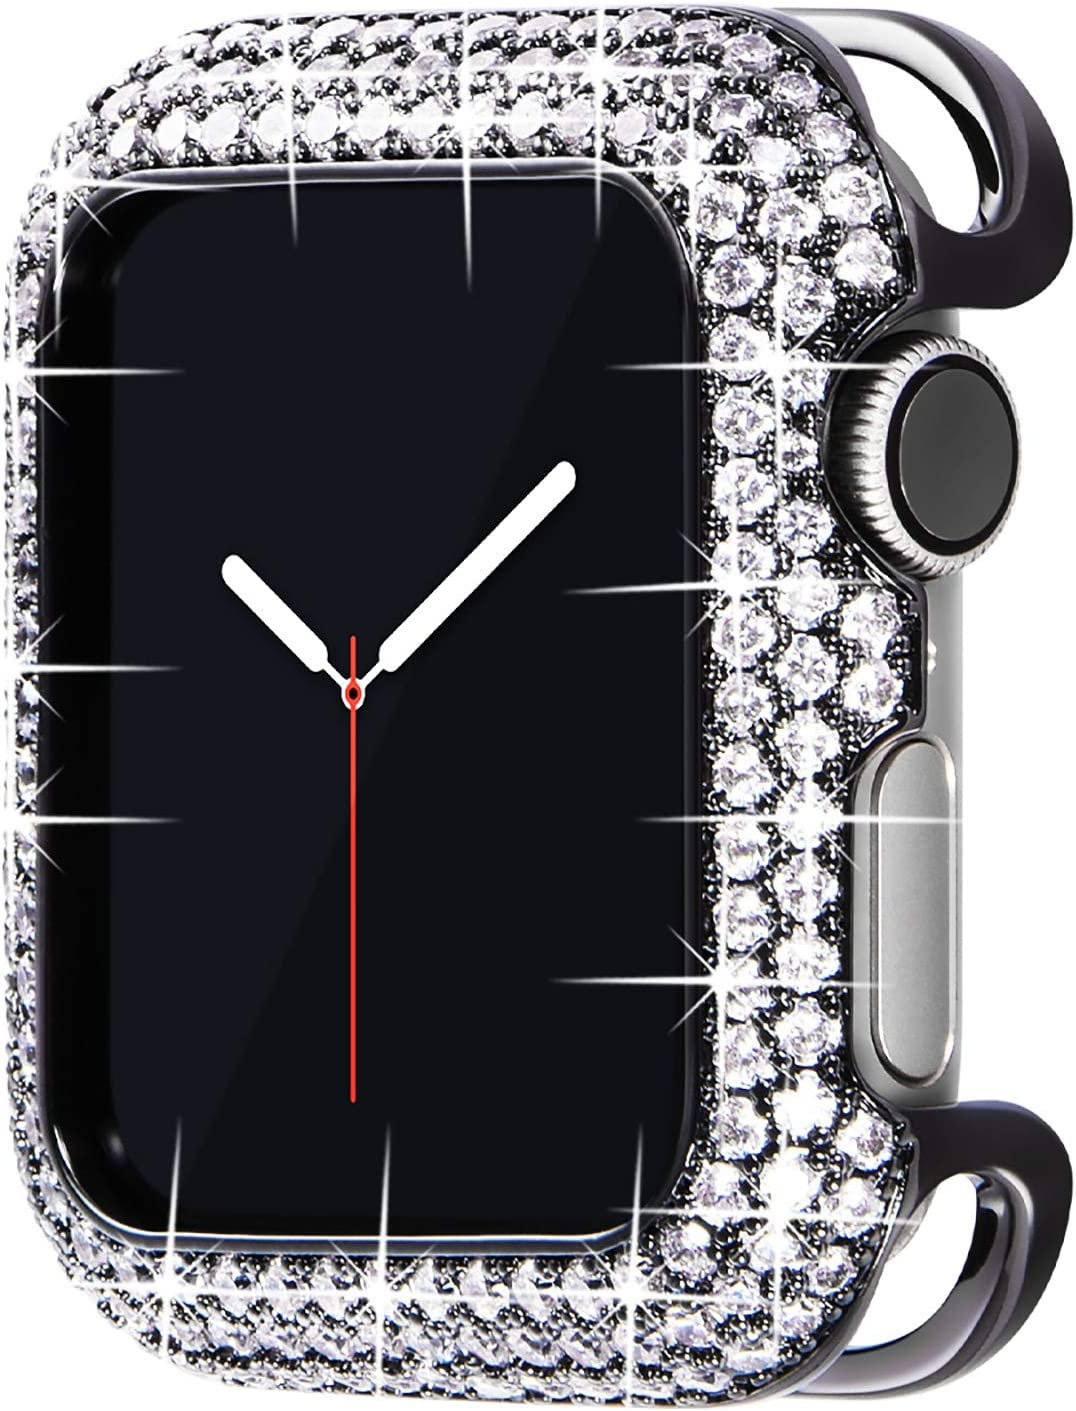 Surace 44mm Bling Case Compatible with Apple Watch Case, Metal Jewelry Protective Case Cover with Cubic Zirconia Crystals Replacement for Apple Watch Series 6/5/4 44mm, Black with Silver Nano Gemstone